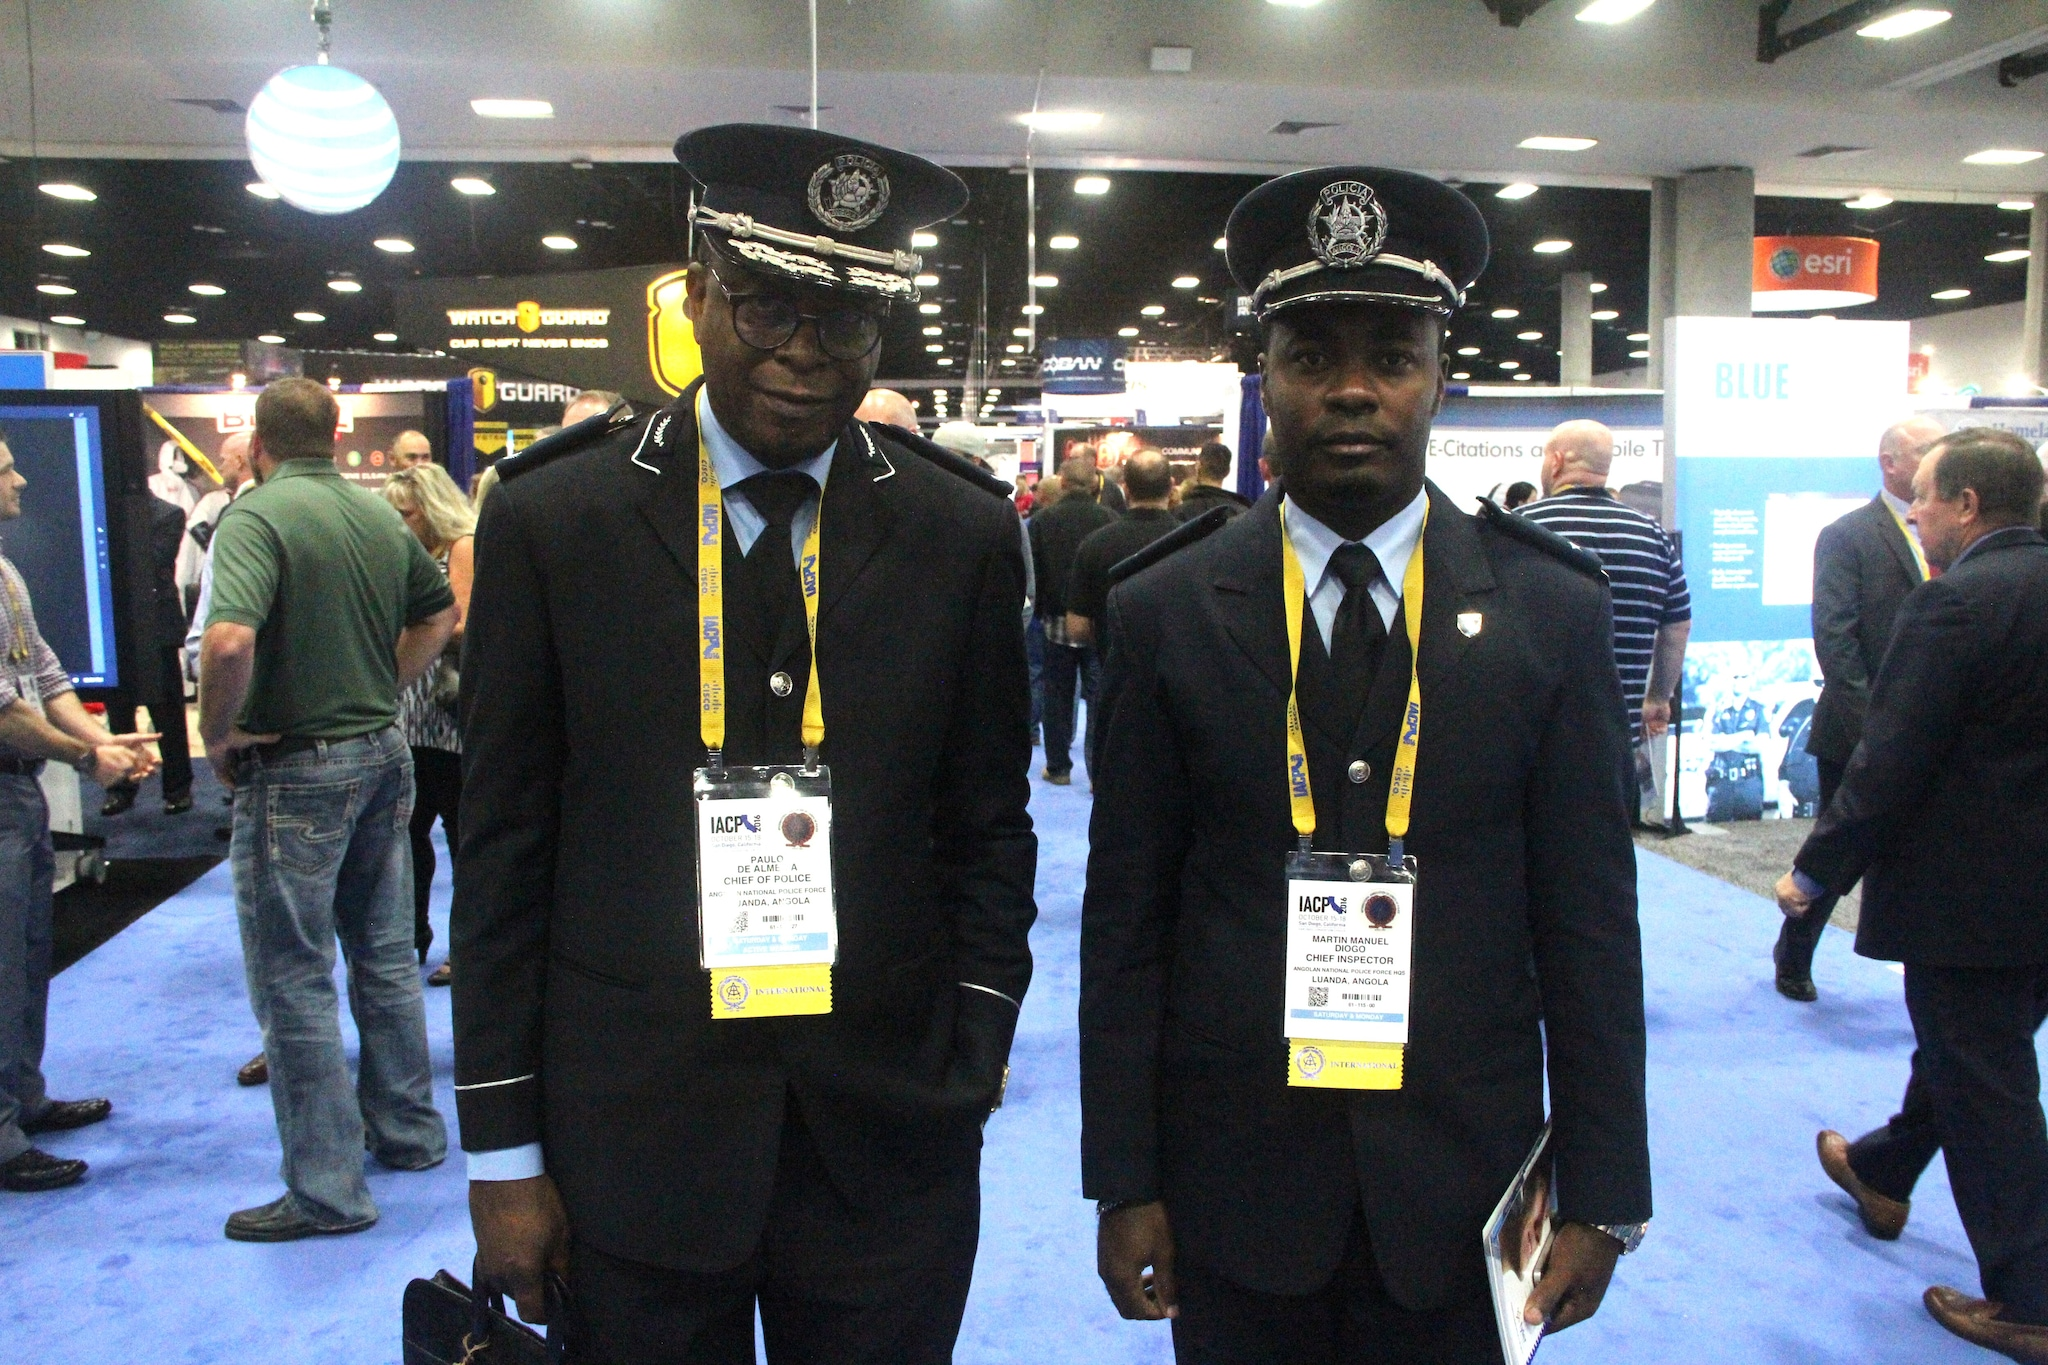 Two chiefs from the Angolan National Police Force in Luanda, Angola, pose for a photo on Uniform Day during the National Association of Police Chiefs annual convention in San Diego Oct. 15-18, 2015. (Photo: Jared Morgan / Guns.com)